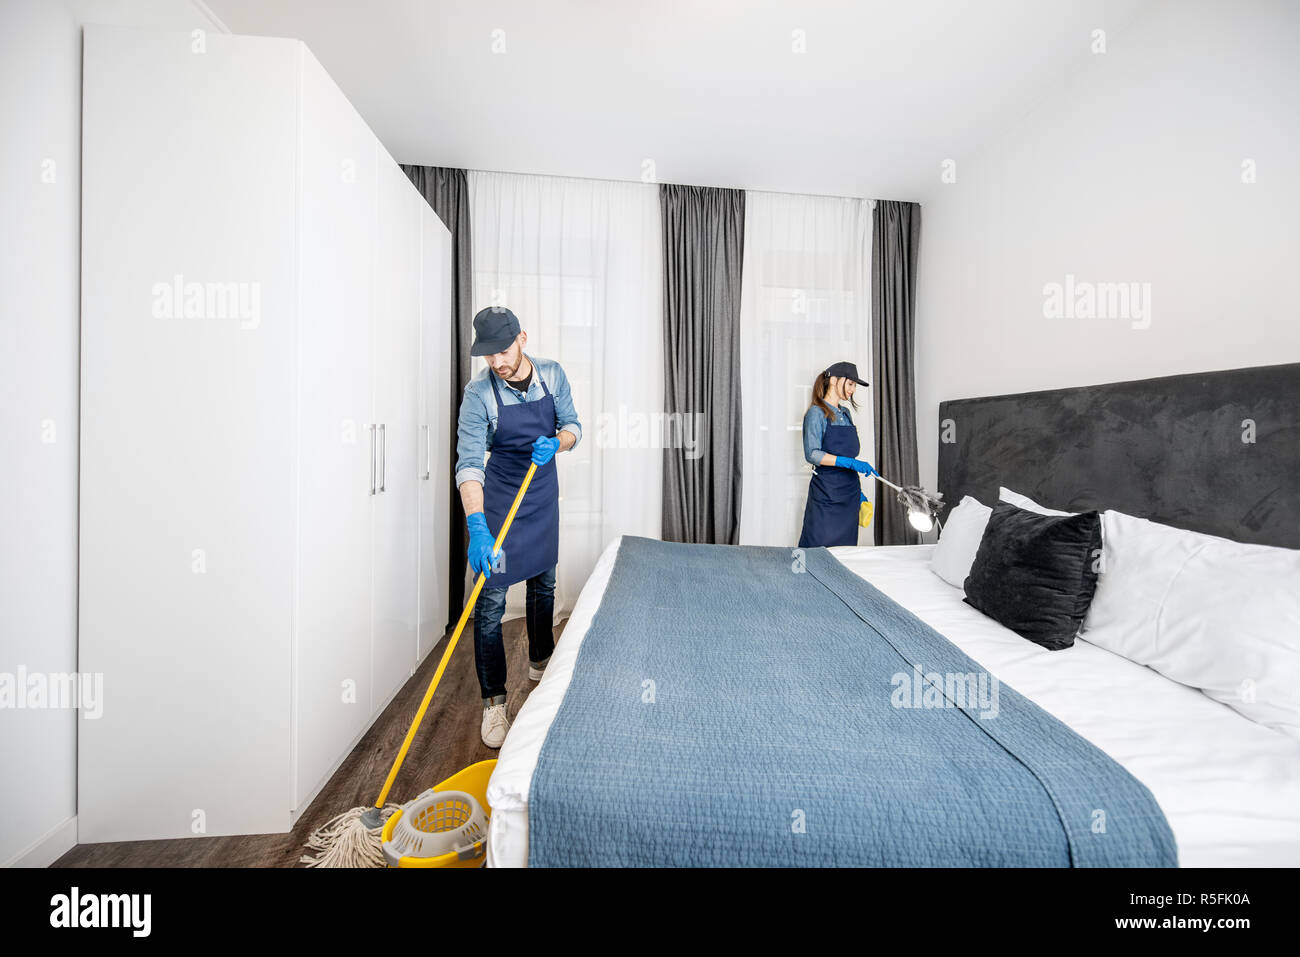 Professional Cleaners In Uniform Washing Floor And Wiping Dust From The Furniture In The Hotel Room Or Apartment Bedroom Cleaning Service Concept Stock Photo Alamy